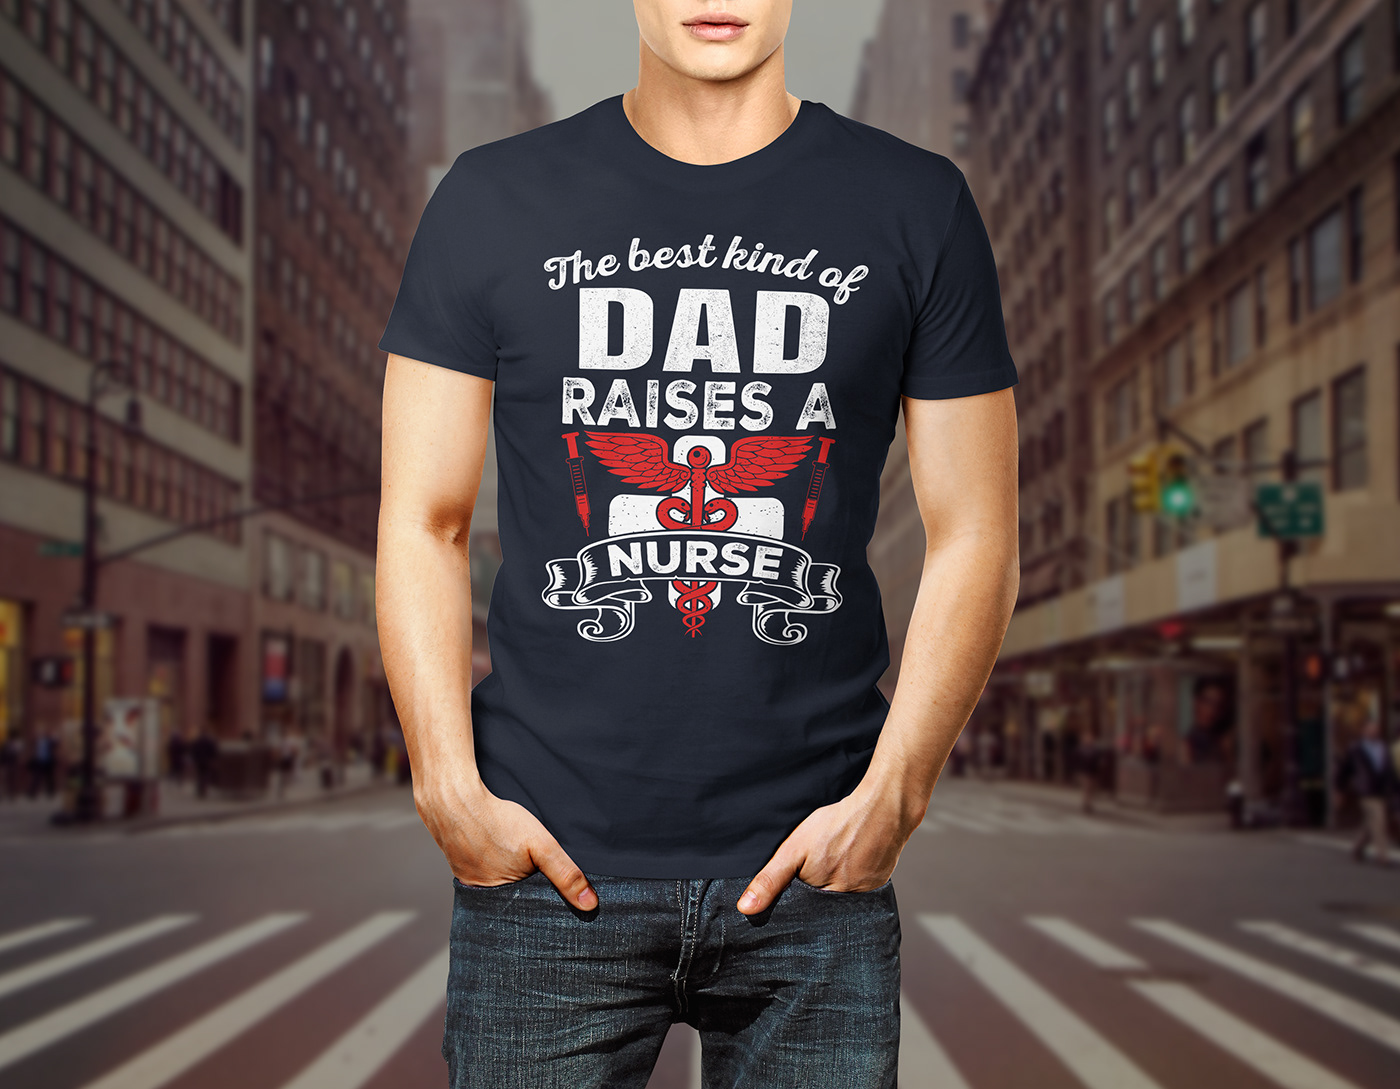 Image may contain: person, clothing and shirt